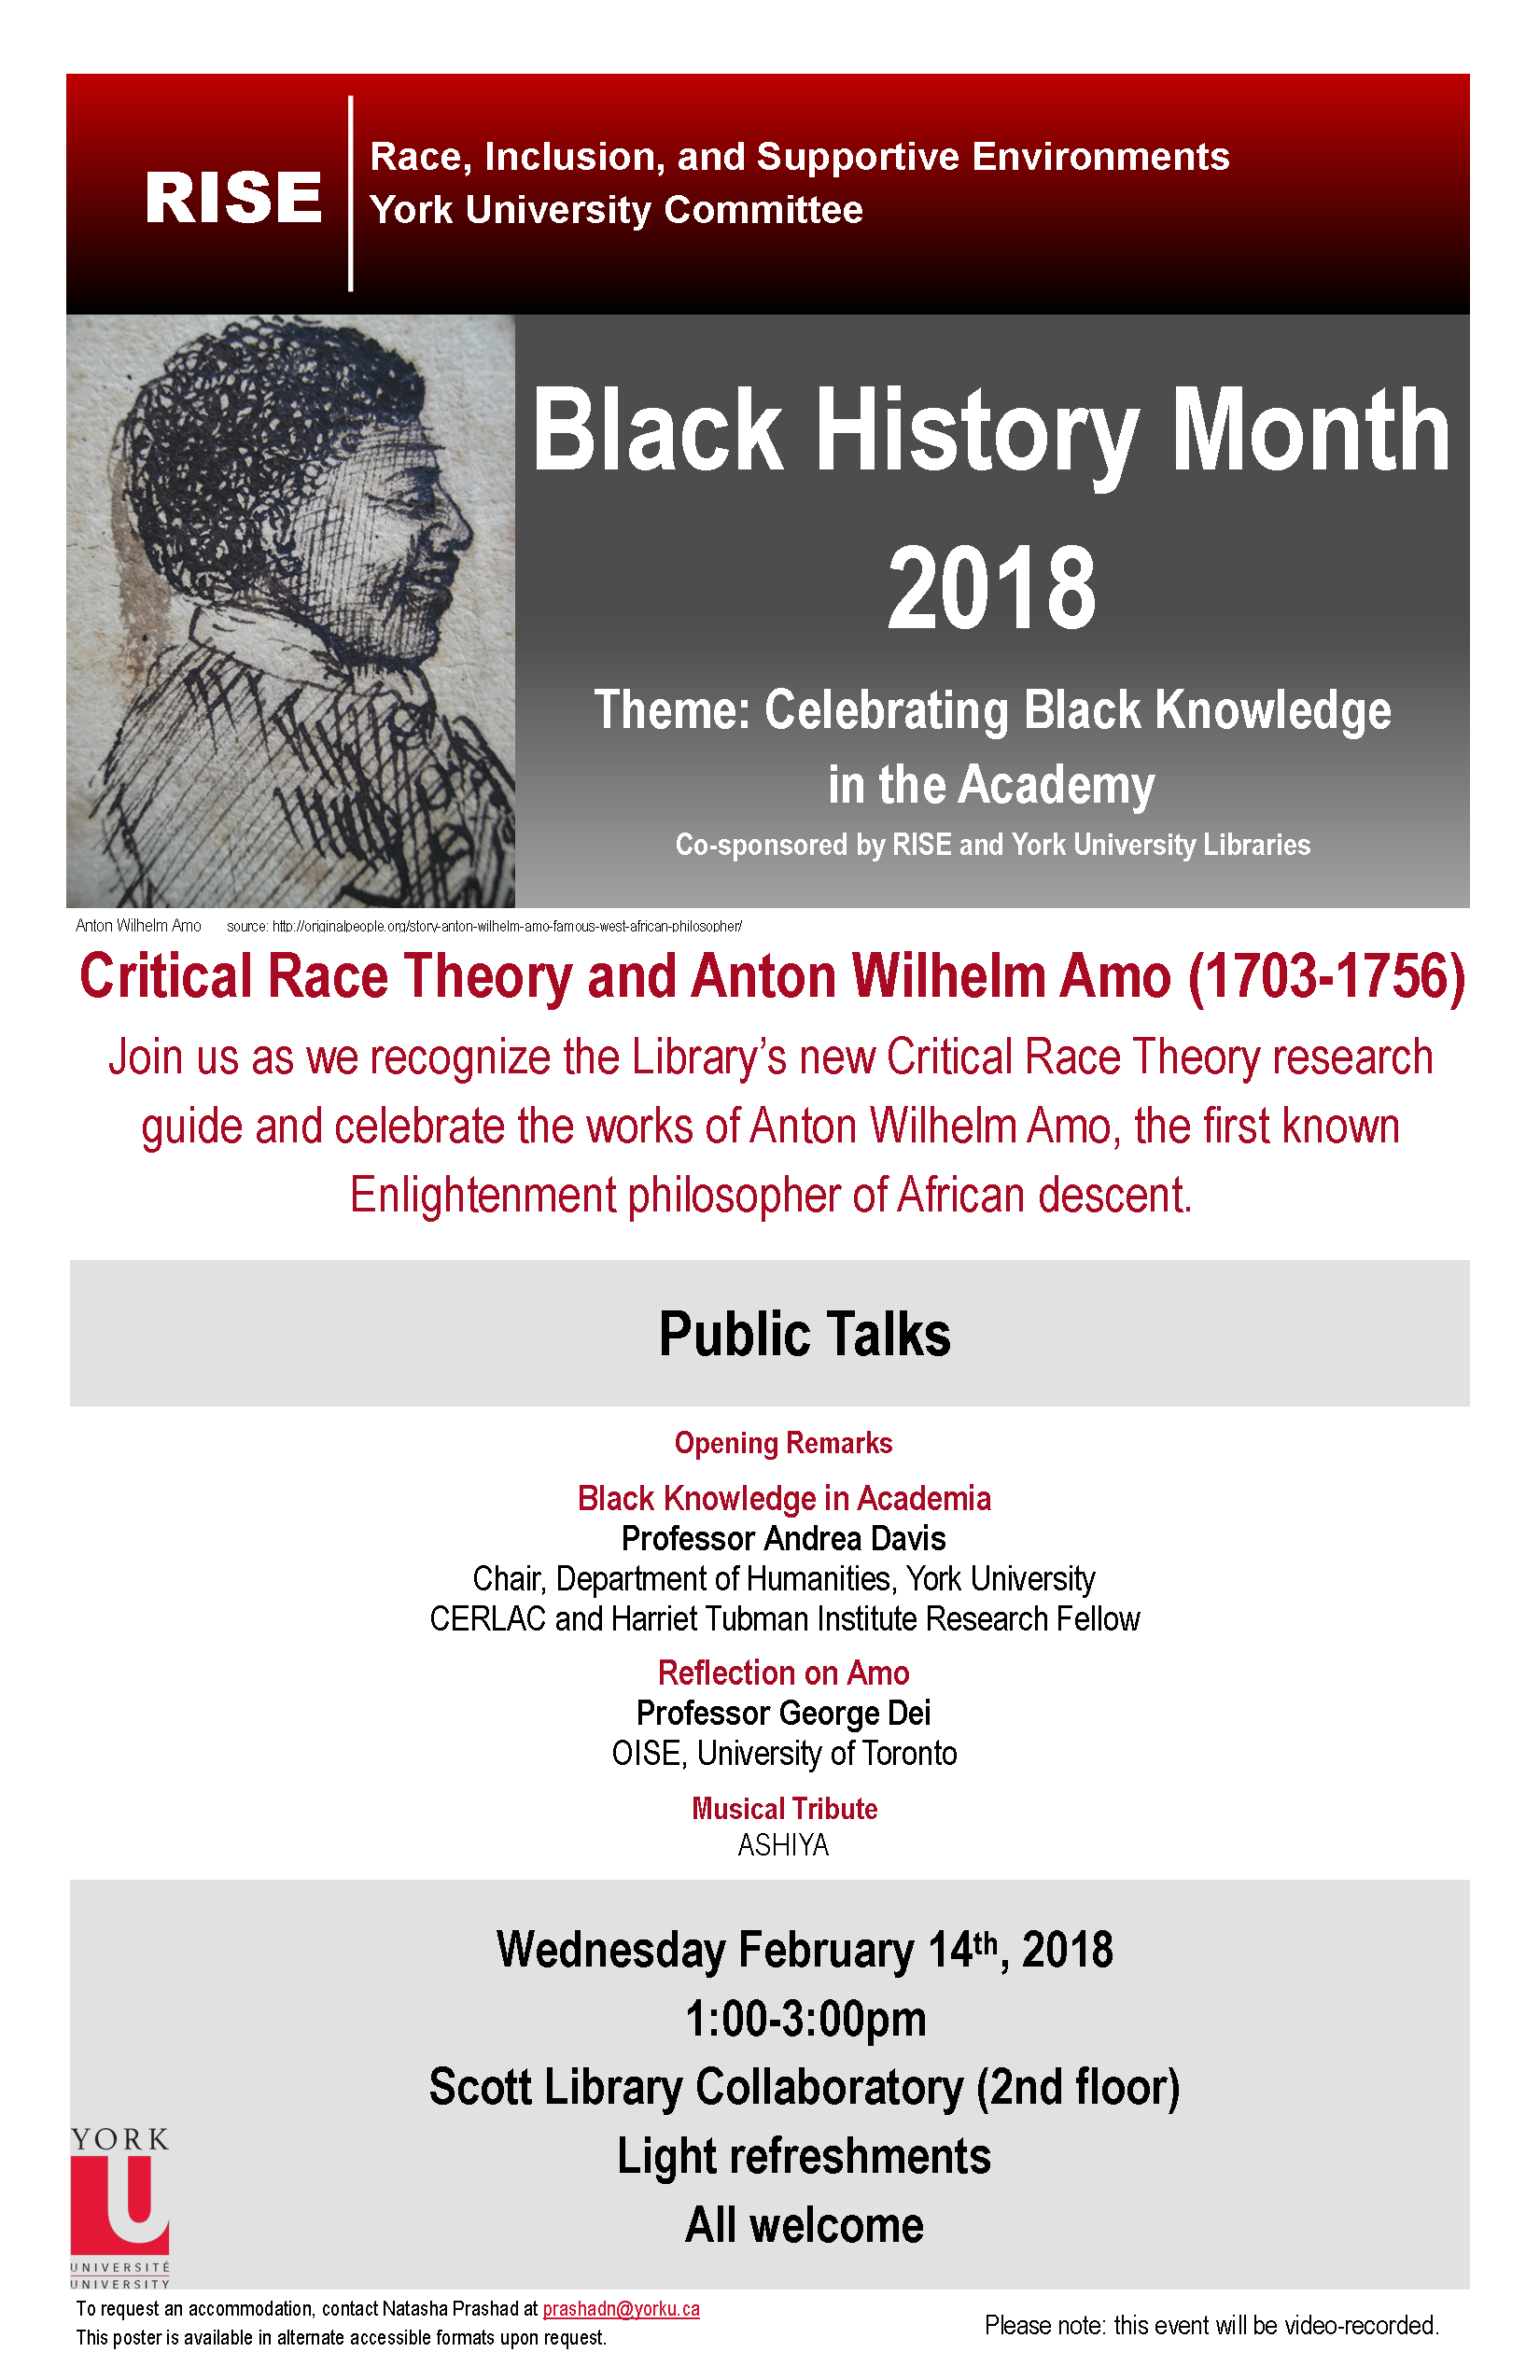 "Header: RISE: Race, Inclusion, and Supportive Environments. York University Committee. To the left, a sketch of Amo. To the right, the text ""Black History Month 2018. Theme: Celebrating Black Knowledge in the Academy. Co-sponsored by RISE and York University Libraries. Below, in red, the text: Critical Race Theory and Anton Wilhelm Amo (1703-1756). Join us as we recognize the Library's new Critical Race Theory research guide and celebrate the works of Anton Wilhelm Amo, the first known Enlightenment philosopher of African descent. Below, a title header with the text ""Public Talks"" In this section the following text: Opening re marks. Then, Black Knowledge in Academia, Professor Andrea Davis, Chair, Department of Humanities, York University. CERLAC and Harriet Tubman Institute Research Fellow. Then, Reflection on Amo, Professor George Dei, OISE, University of Toronto. Then, Musical Tribute, ASHIYA. Below, a section block with the text: Wednesday February 14th, 2018.1:00-3:00pm.Scott Library Collaboratory (2nd floor).Light refreshments.All welcome Below, in the footer on the left side is, the York University logo and the text: To request an accommodation, contact Natasha Prashad at prashadn@yorku.ca. This poster is available in alternate accessible formats upon request. On the right side of the footer is the text Please note: this event will be video-recorded."